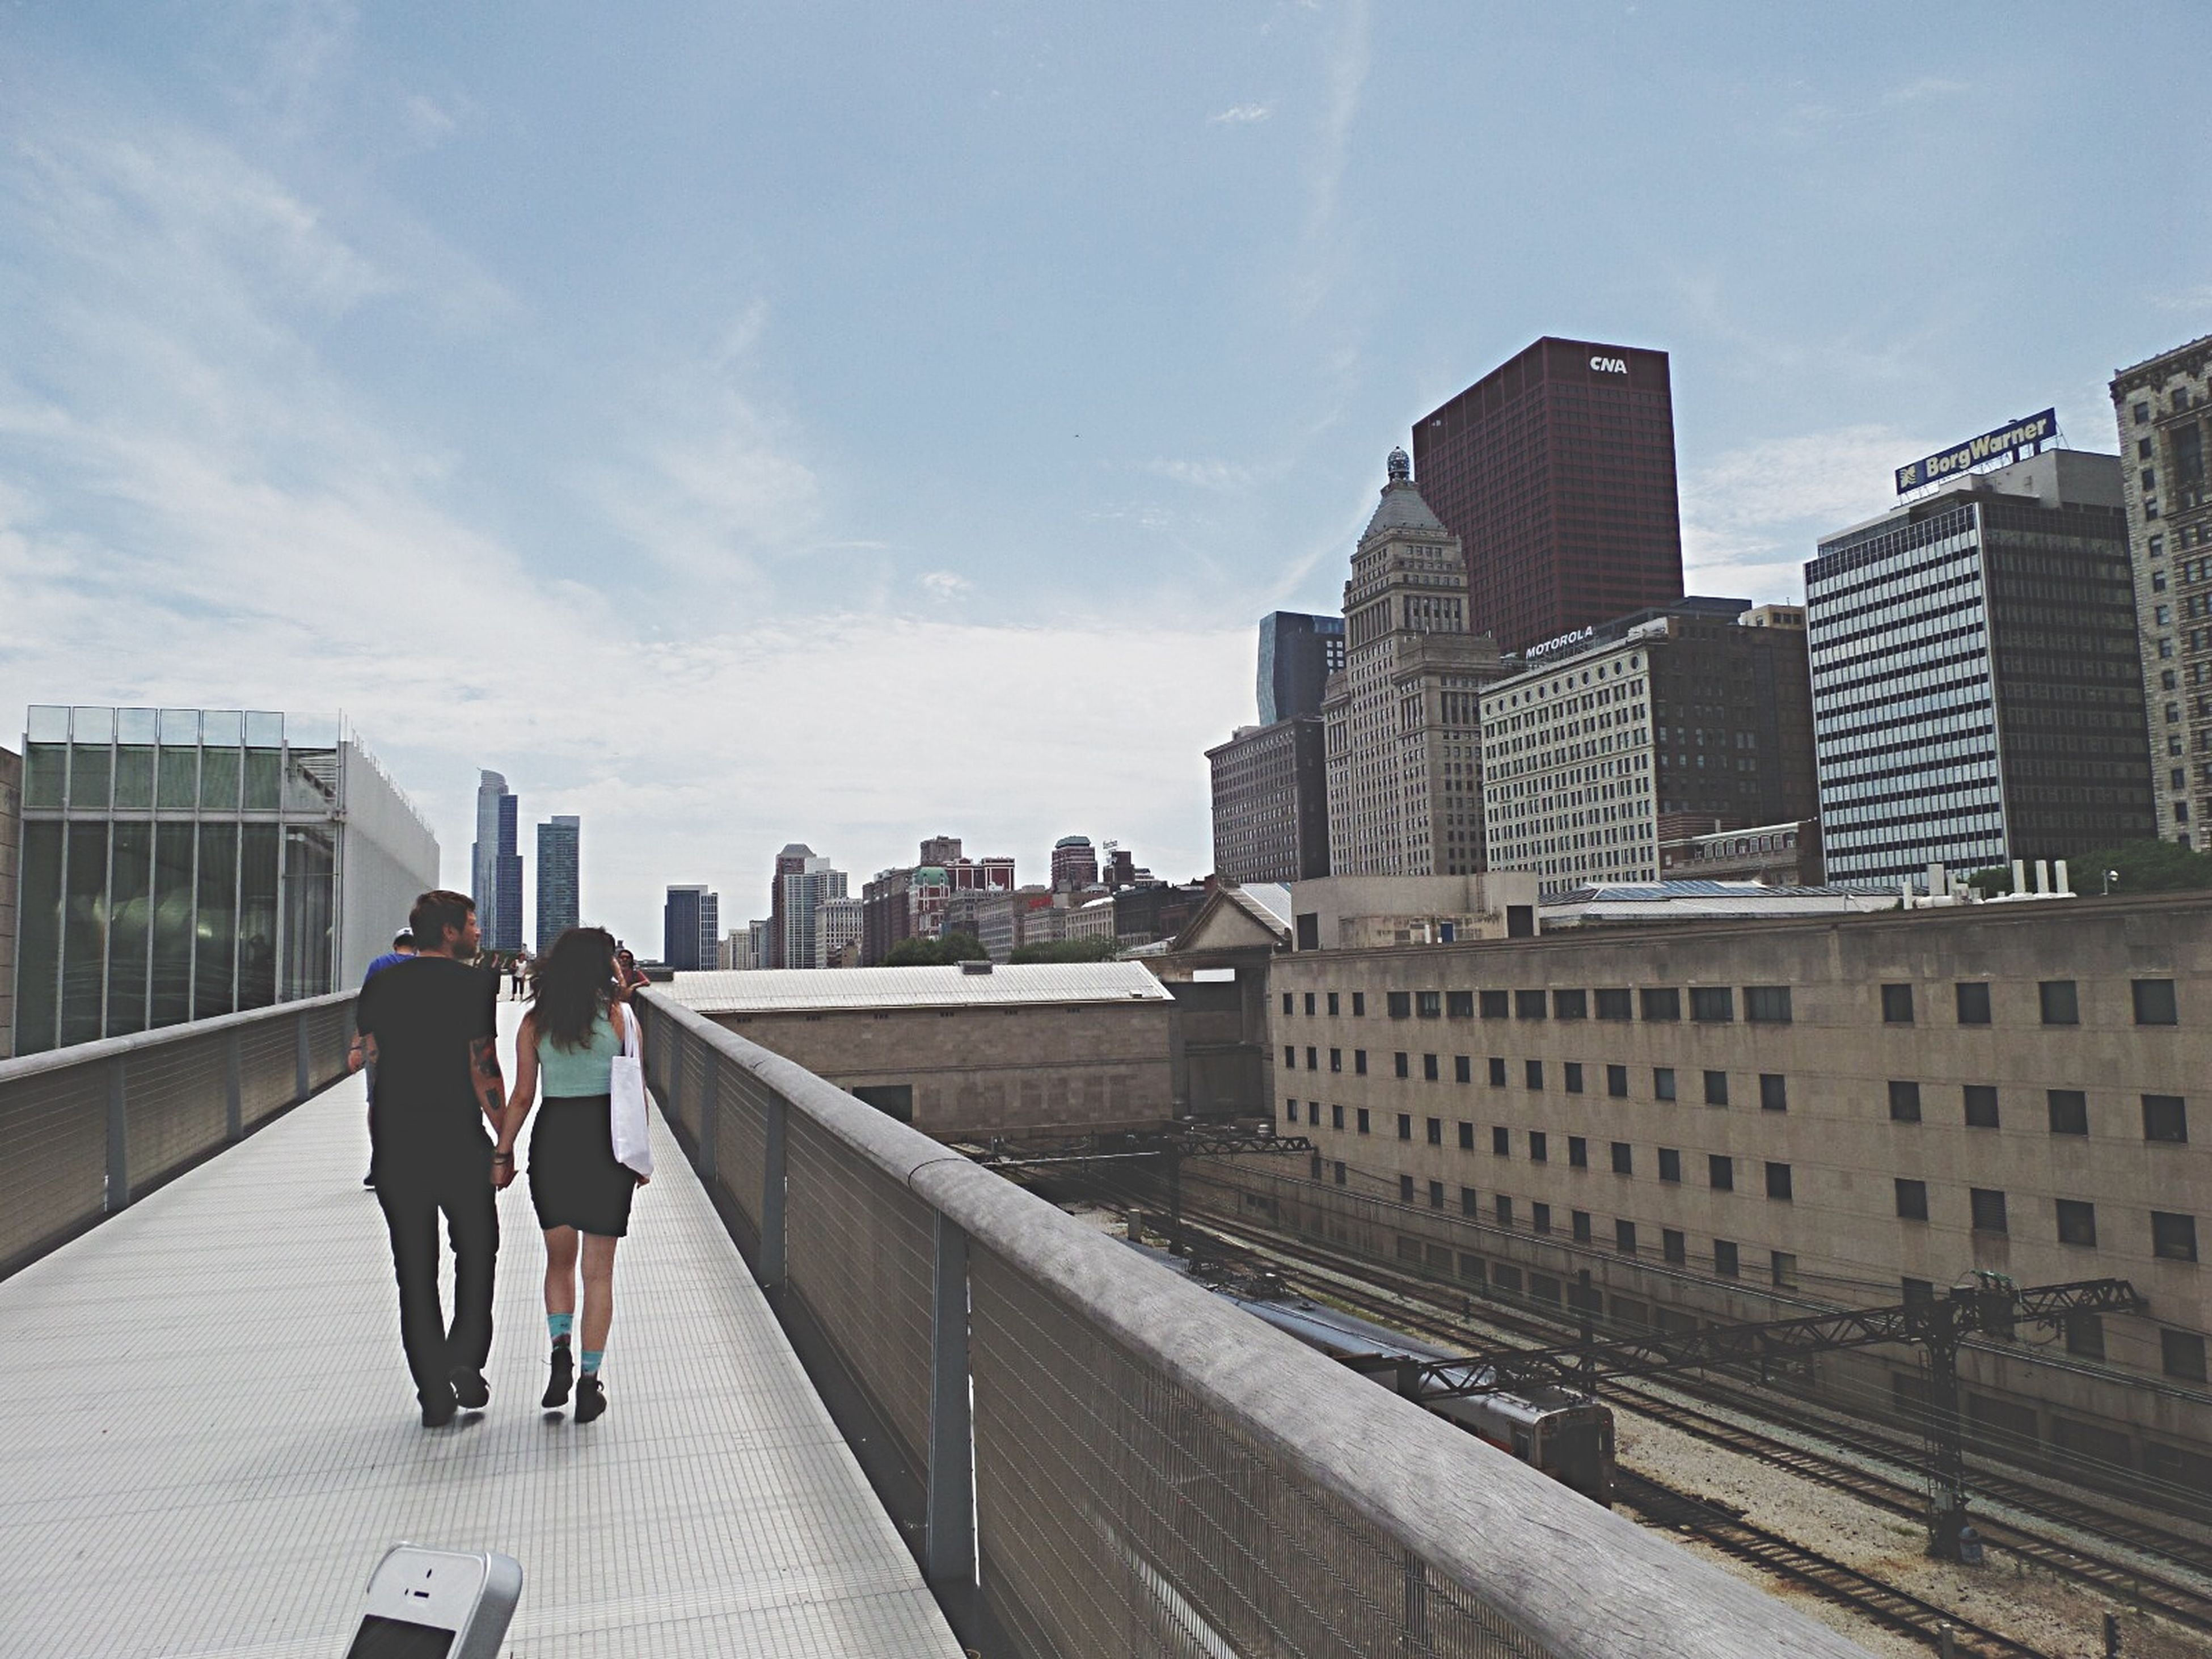 building exterior, architecture, built structure, full length, lifestyles, men, city, walking, sky, leisure activity, rear view, person, city life, railing, casual clothing, sunlight, cloud